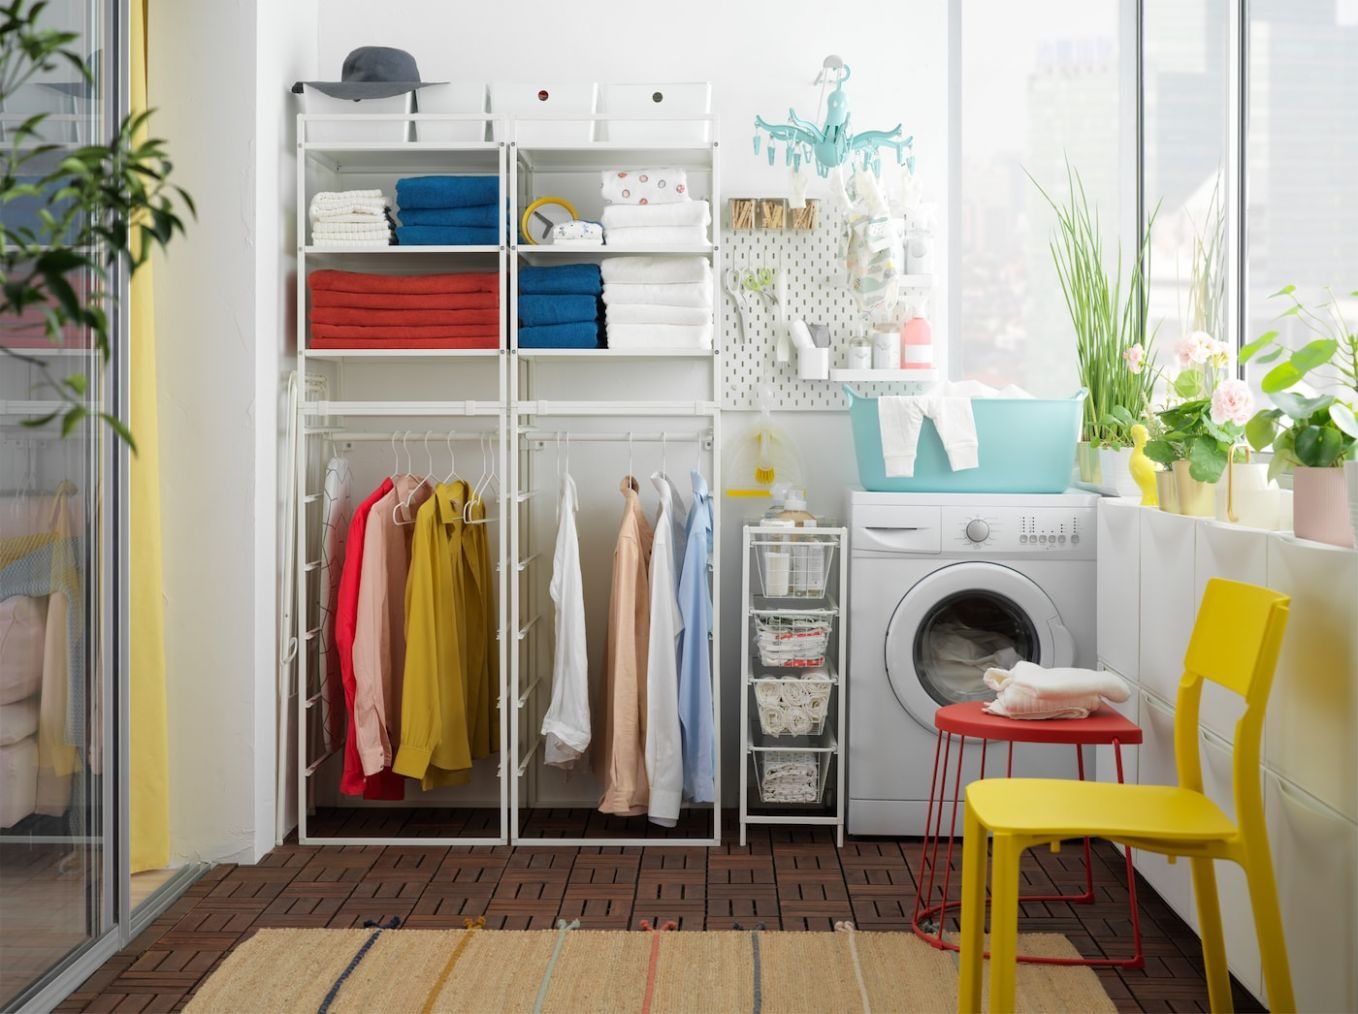 Affordable laundry room with JONAXEL shelving unit - IKEA - laundry room ideas ikea